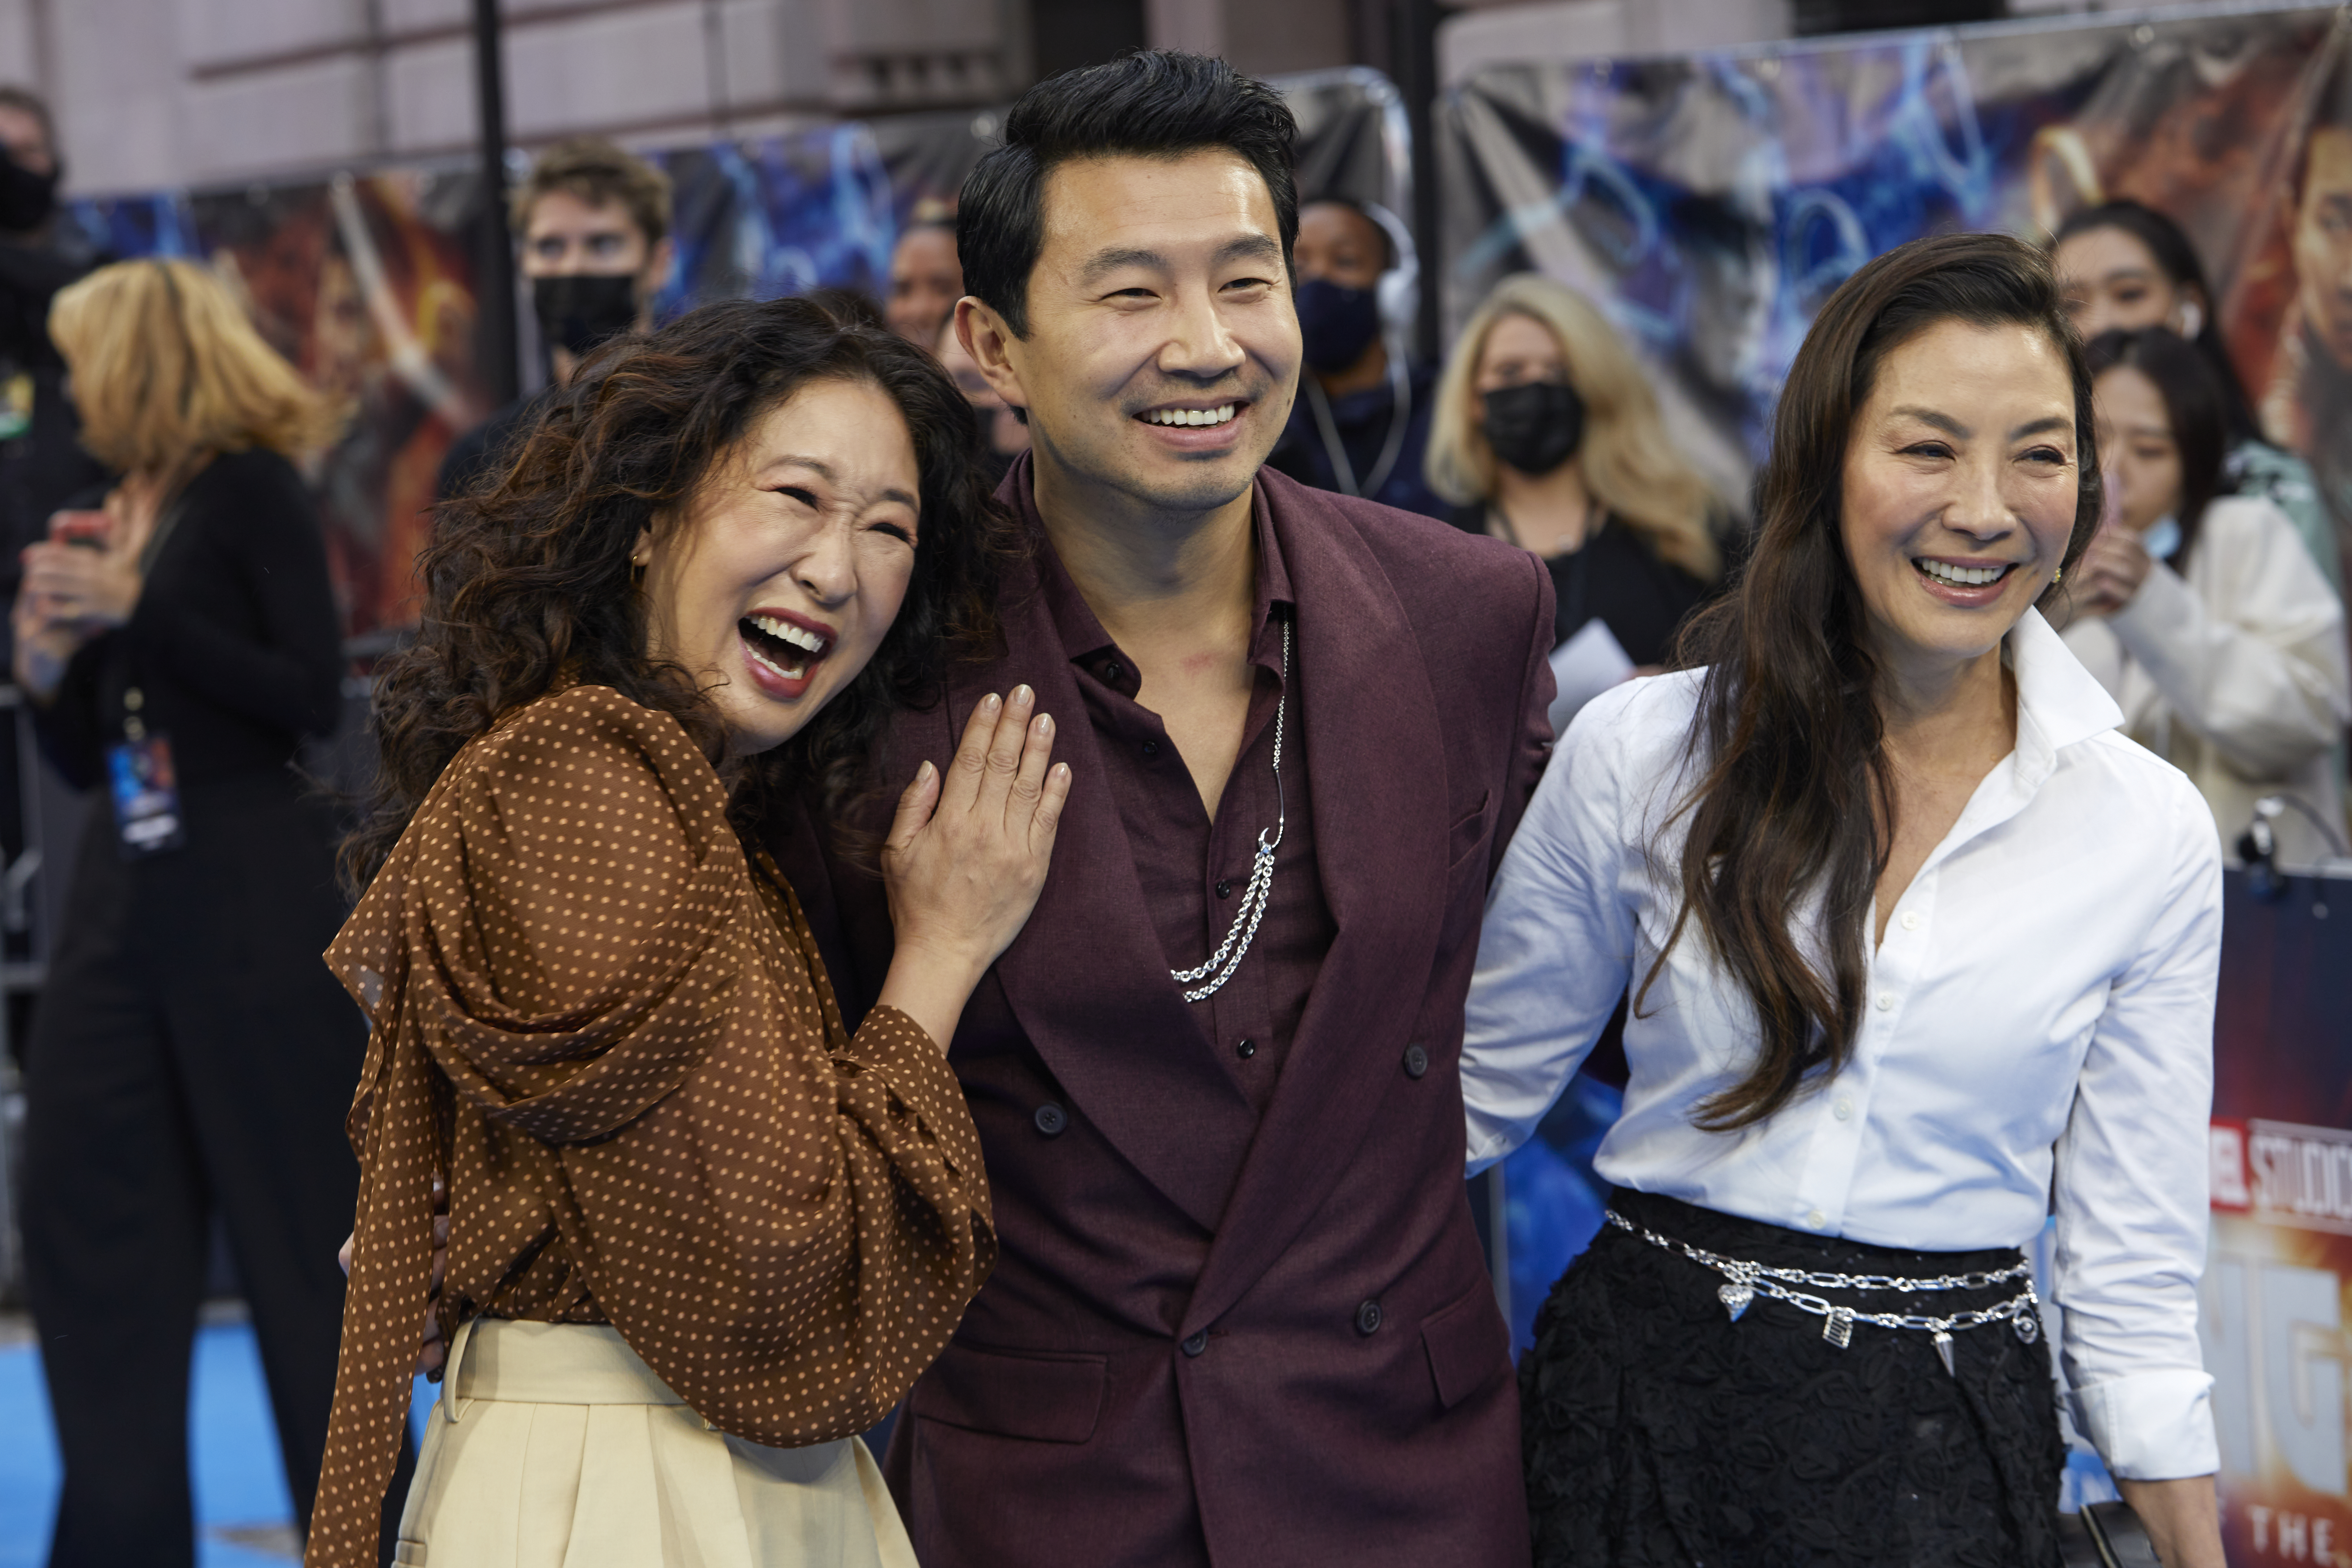 Michelle Yeoh, Sandra Oh, and Simu Liu at an event for Shang-Chi and the Legend of the Ten Rings (2021)